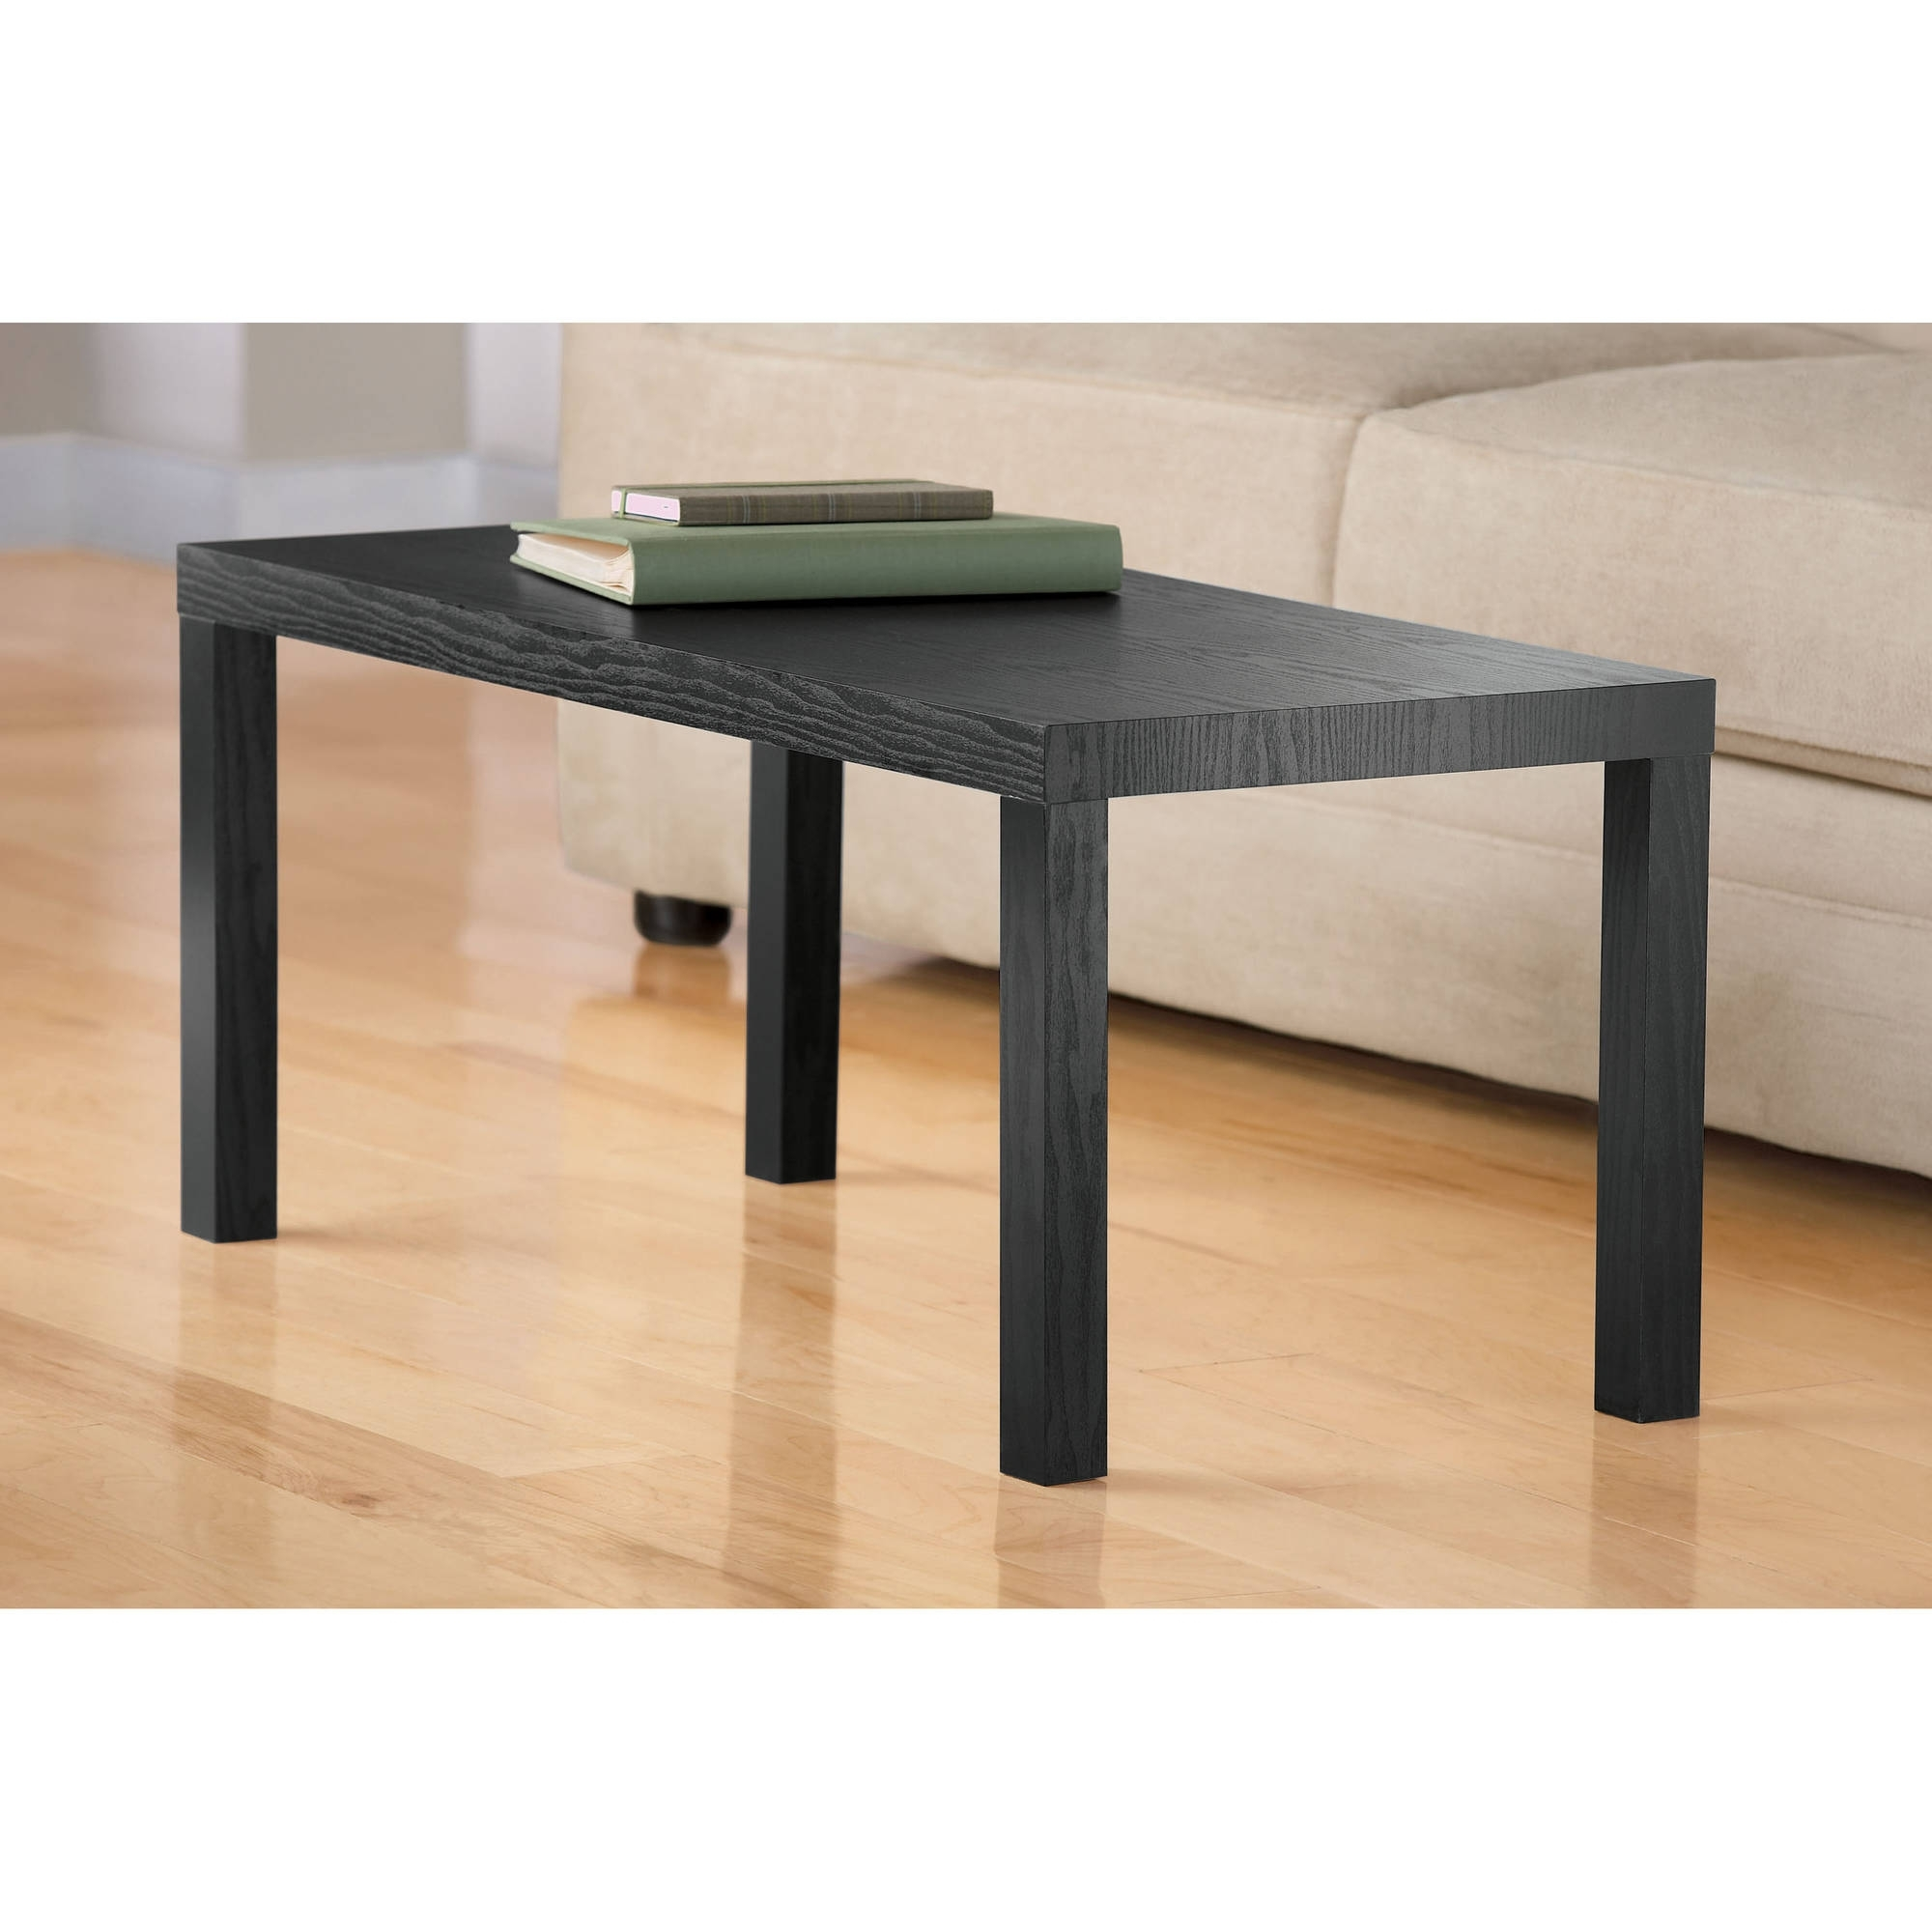 Dhp Parsons Rectangular Coffee Table, Multiple Colors – Walmart Throughout Preferred Kai Small Coffee Tables (View 7 of 20)